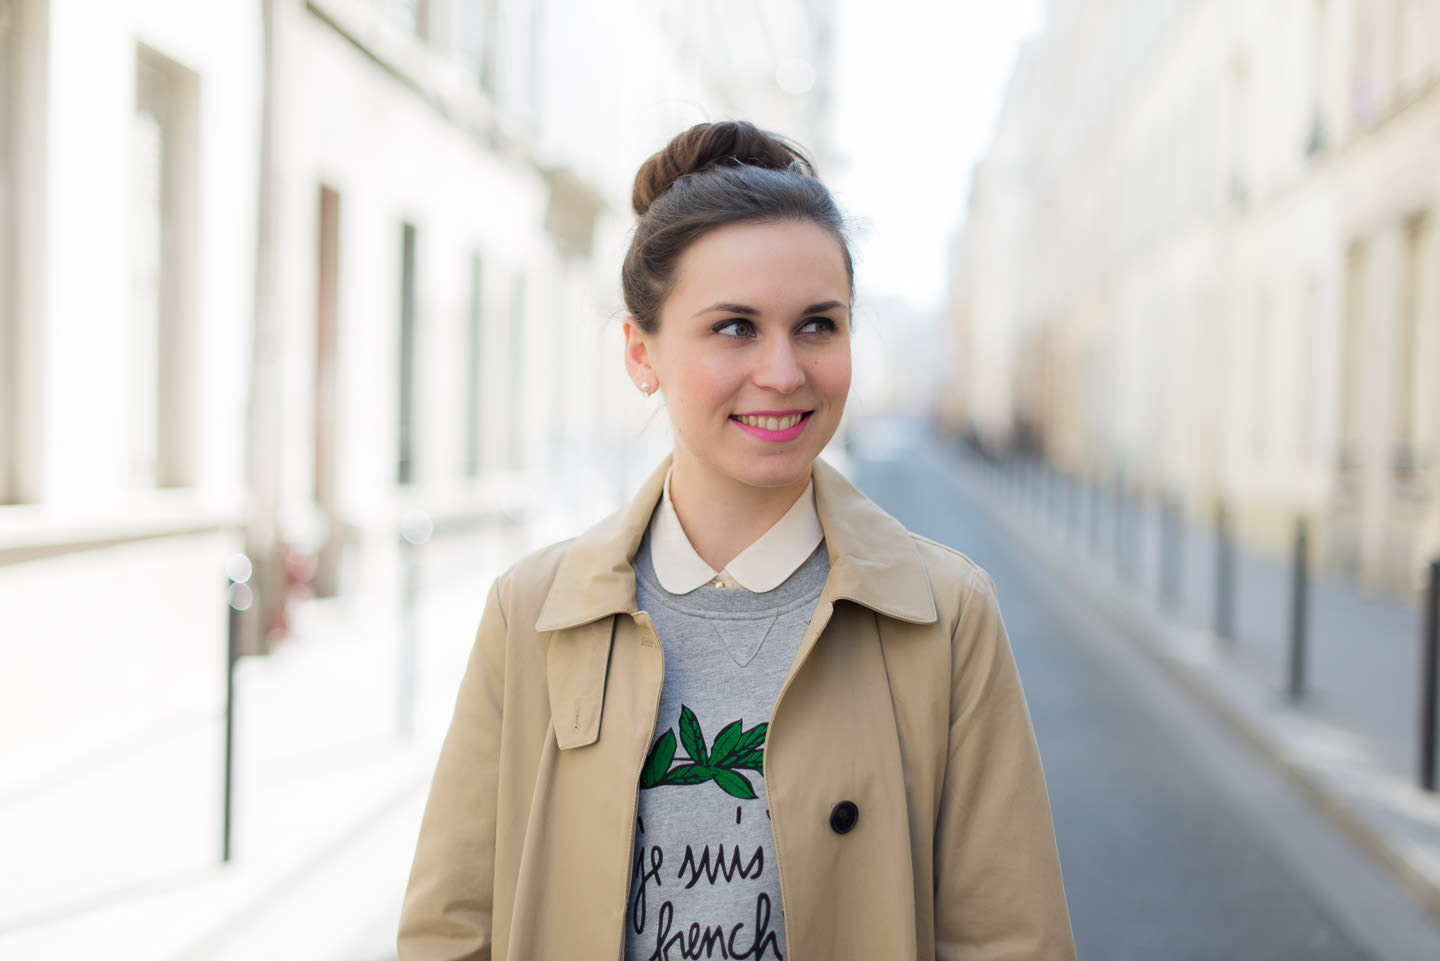 Blog-Mode-And-The-City-looks-sweat-vicomte-a-je-suis-french-7